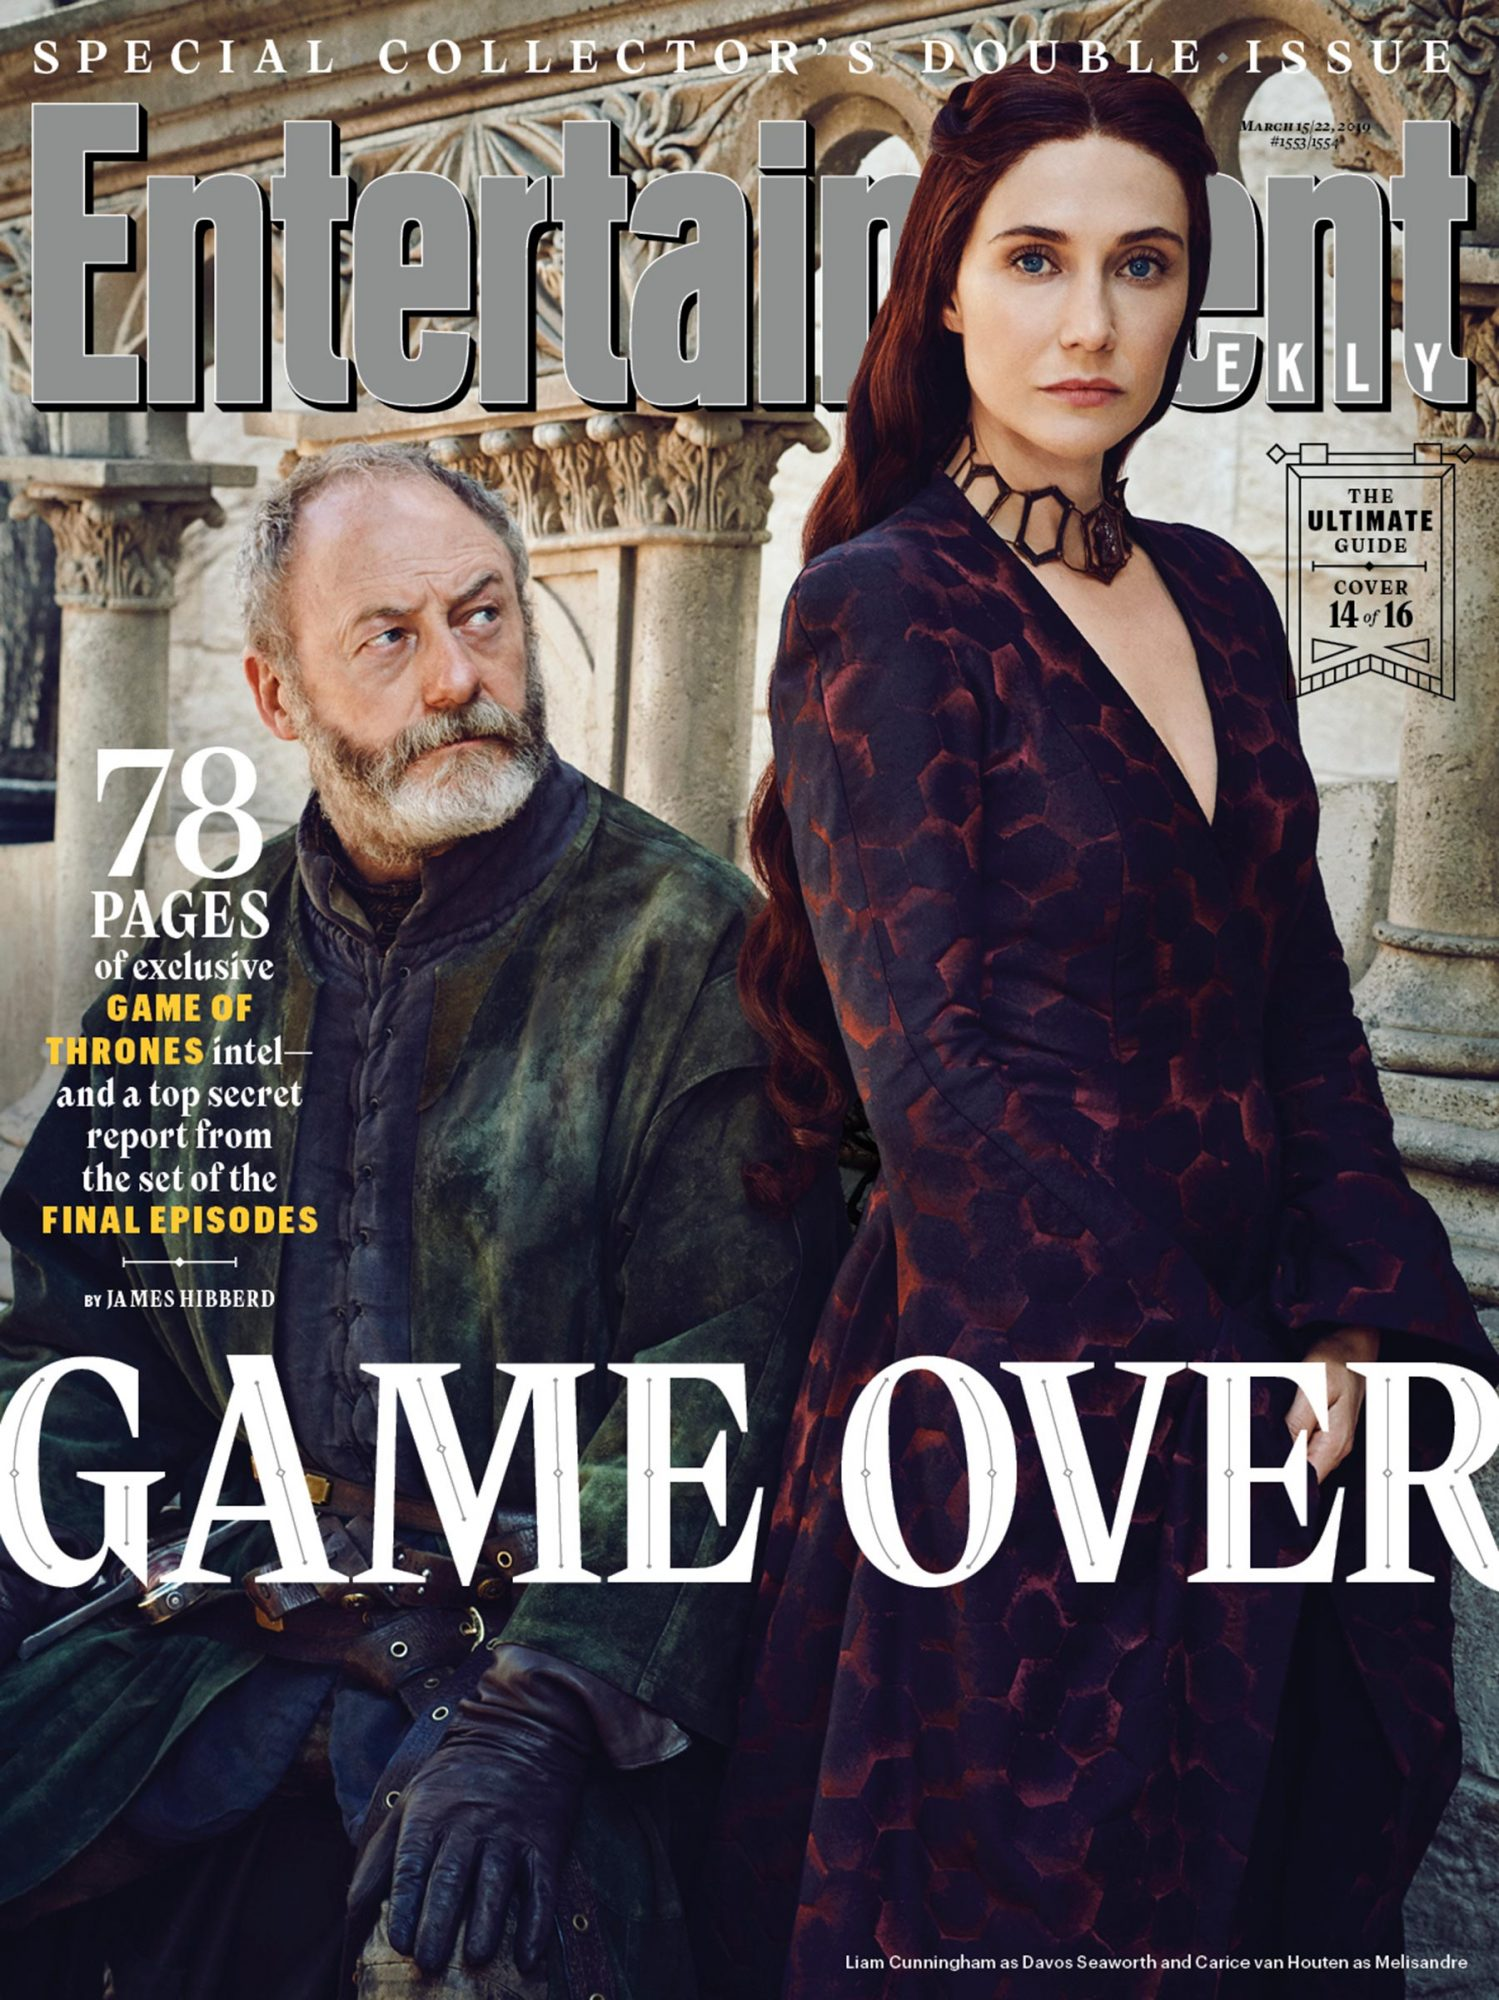 Liam Cunningham and Carice van Houten as Davos Seaworth and Melisandre